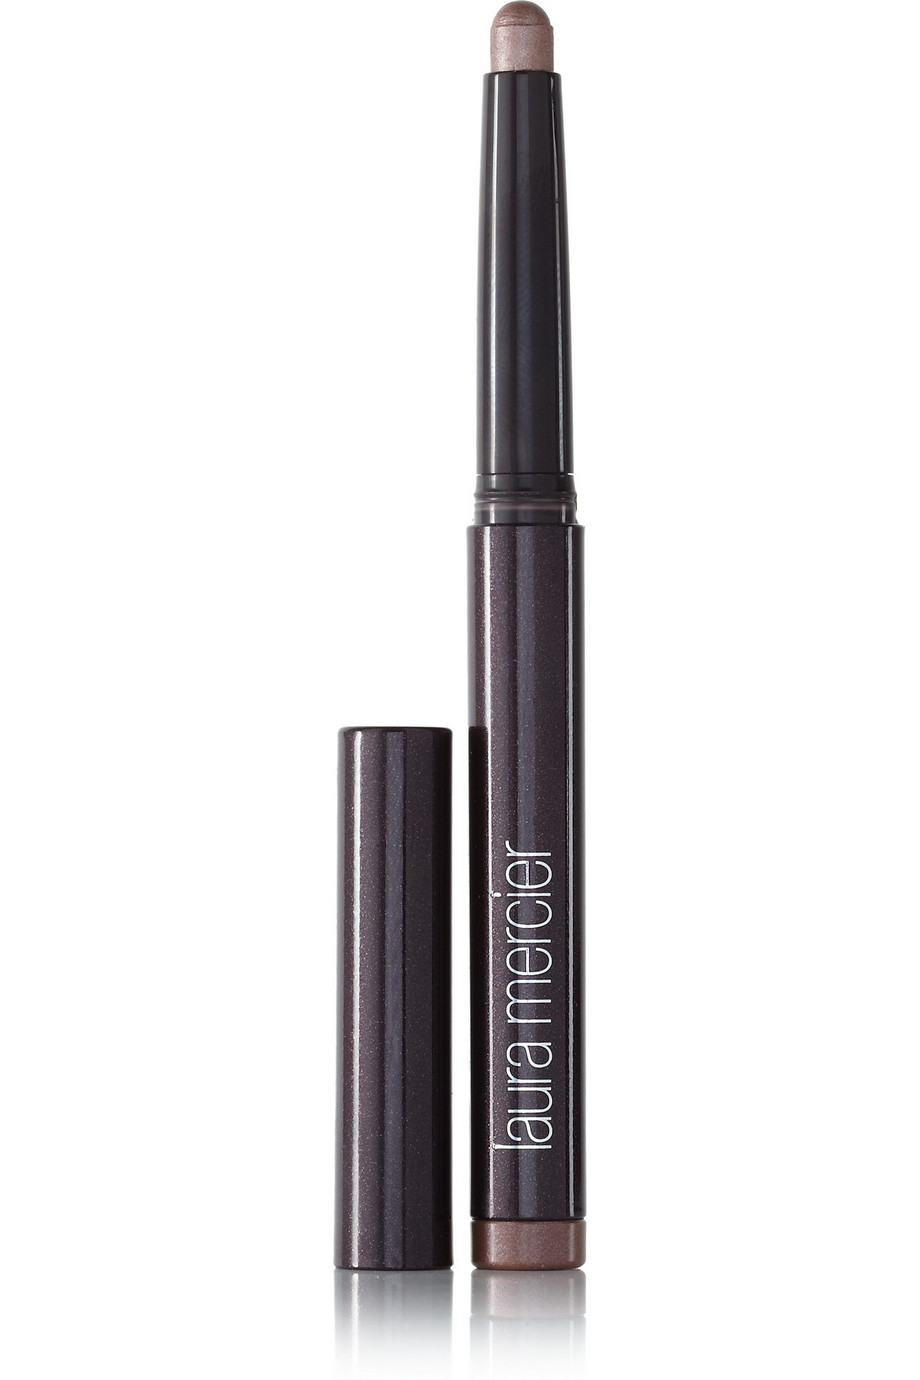 Laura Mercier Caviar Stick Eye Color - Amethyst